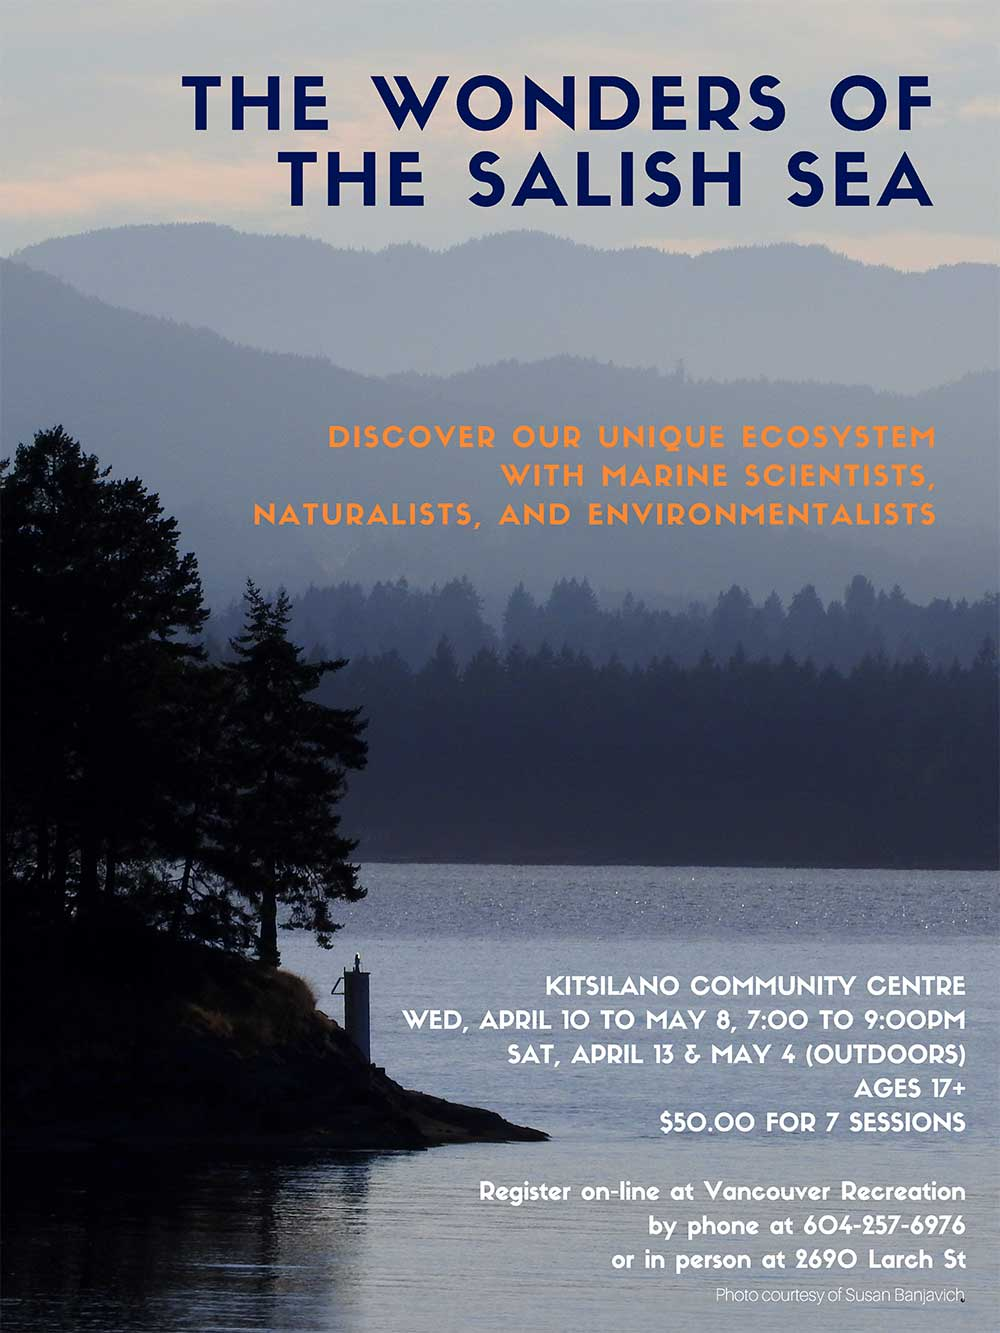 The Wonders of the Salish Sea April-3 to May-1, 2019 from 7:00 pm to 9:00 pm Vancouver borders one of the largest inland seas in the world, the Salish Sea. Discover the wonders of this uniquely bio diverse, yet fragile, marine ecosystem with the guidance of local marine scientists, naturalists and environmentalists. Sessions will be both indoor and outdoor.